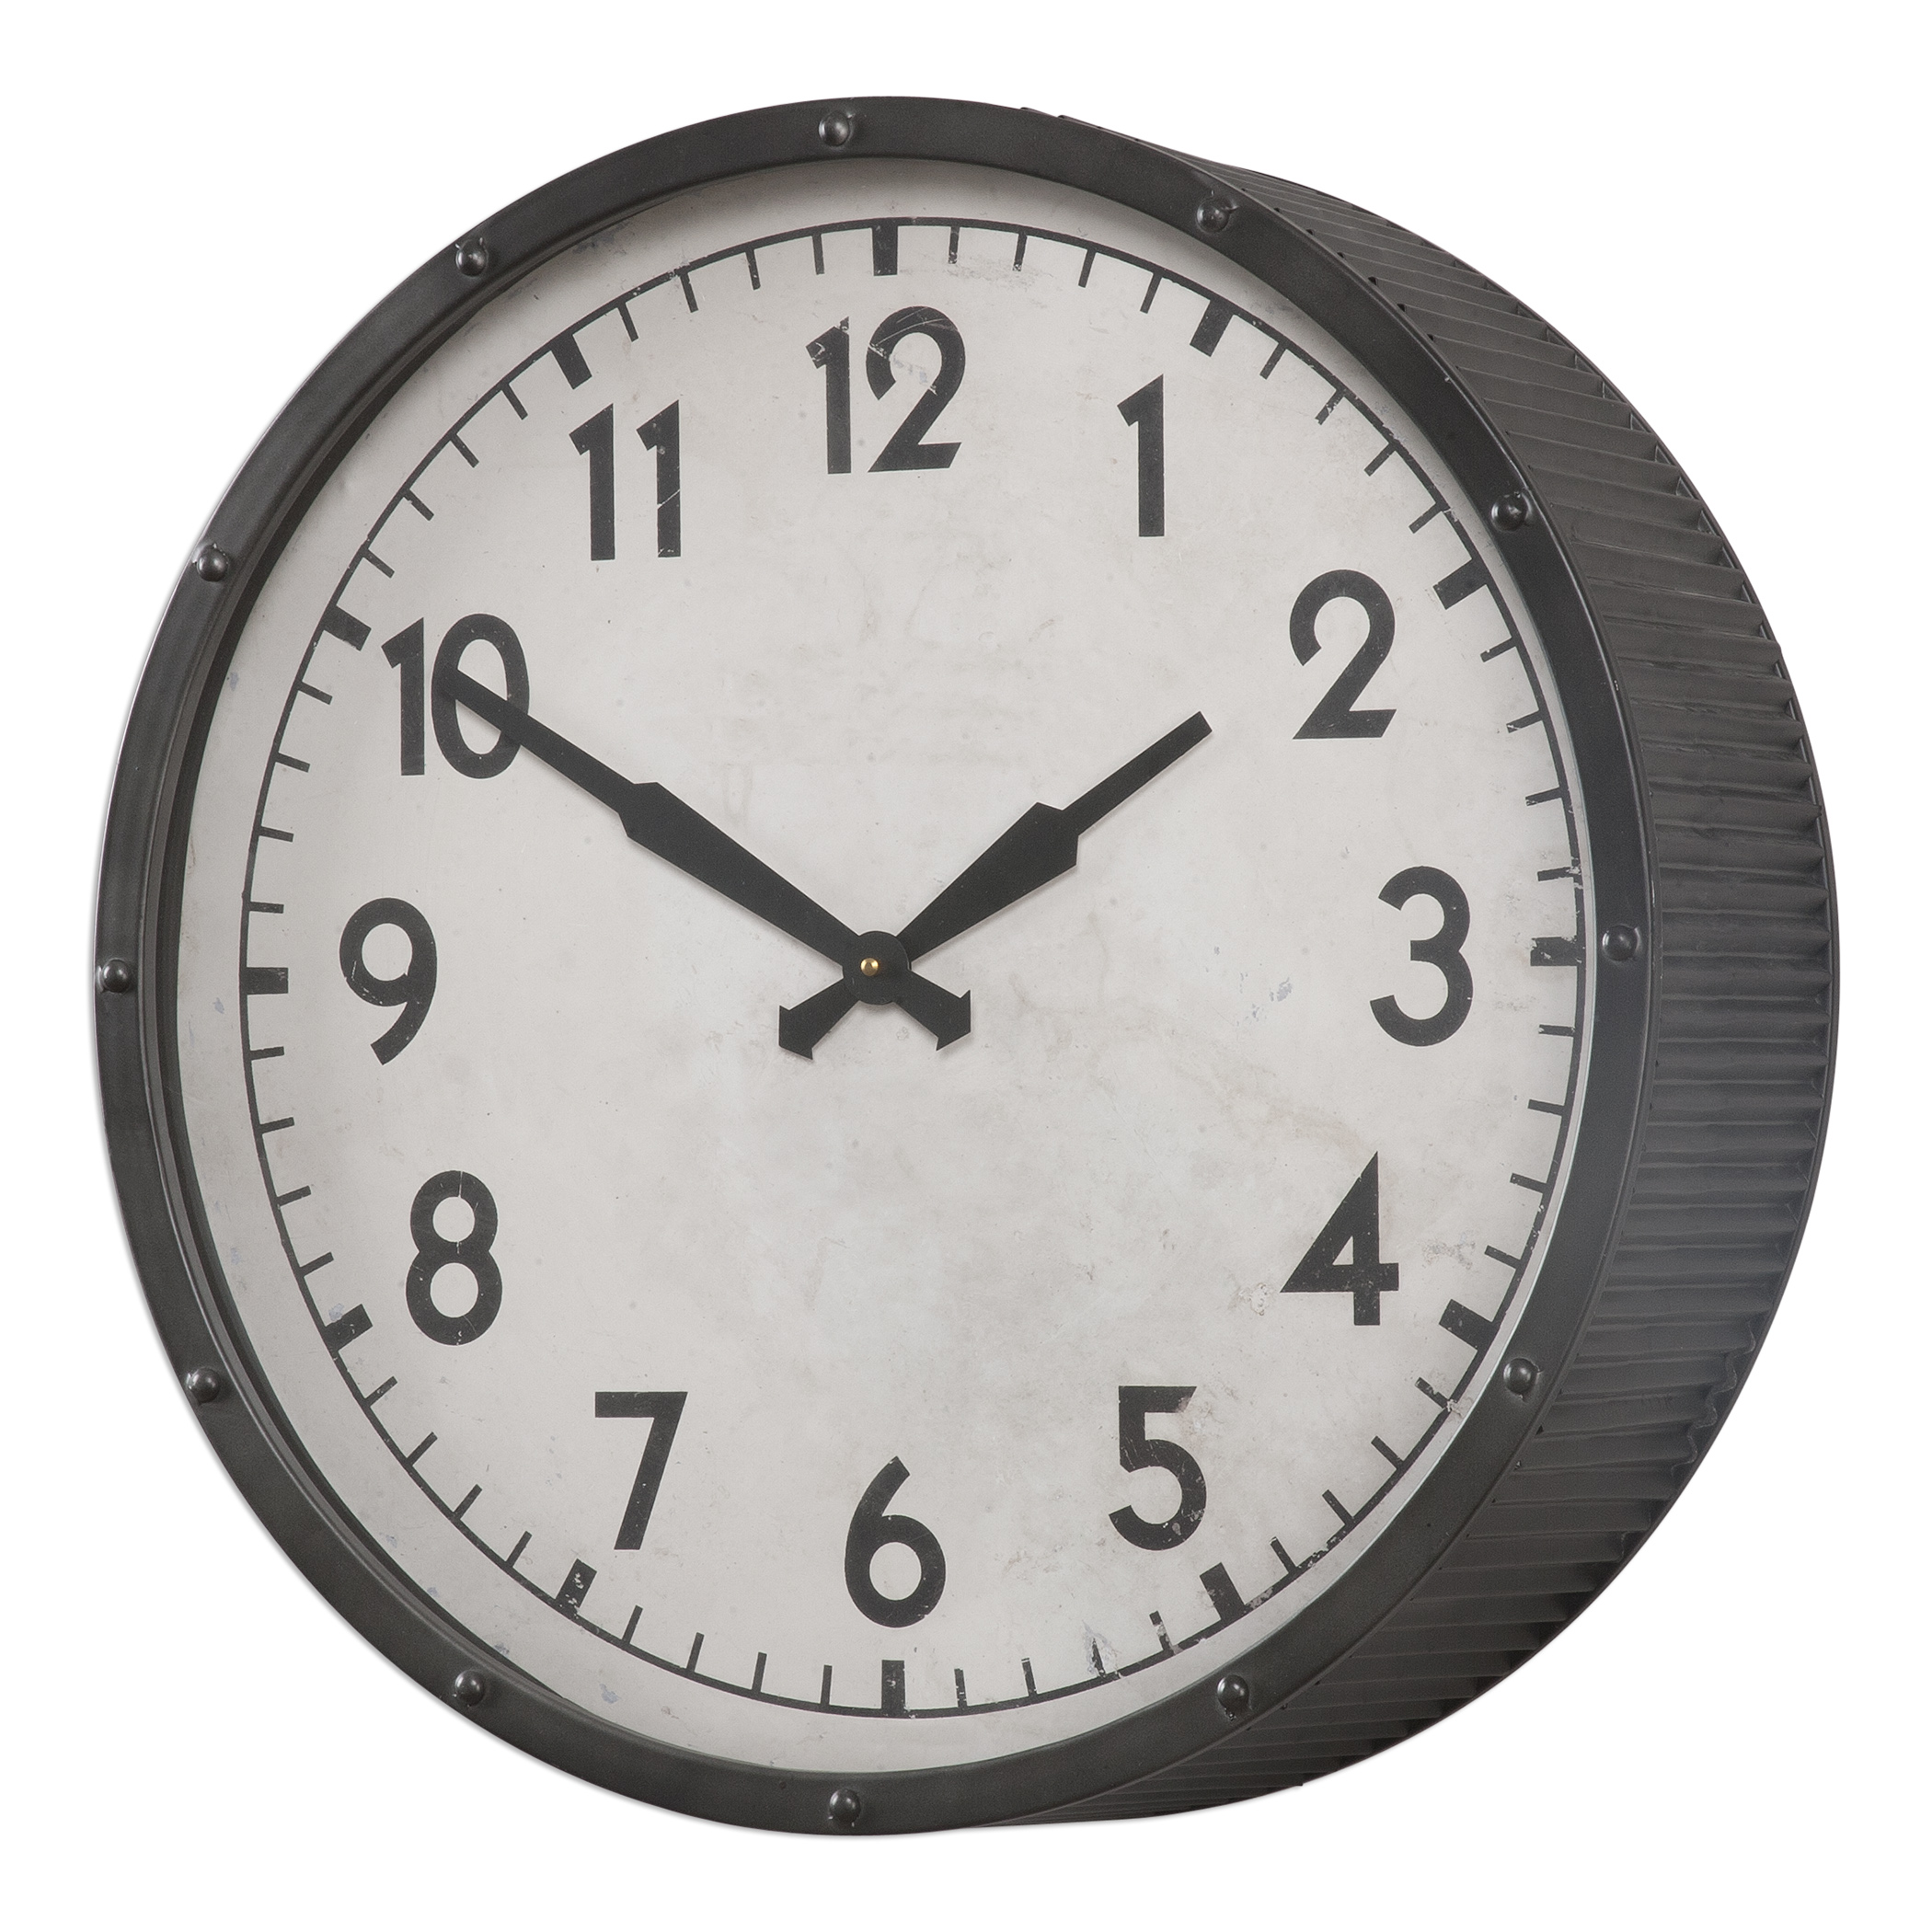 Uttermost Clocks Berta Ivory Wall Clock - Item Number: 06434